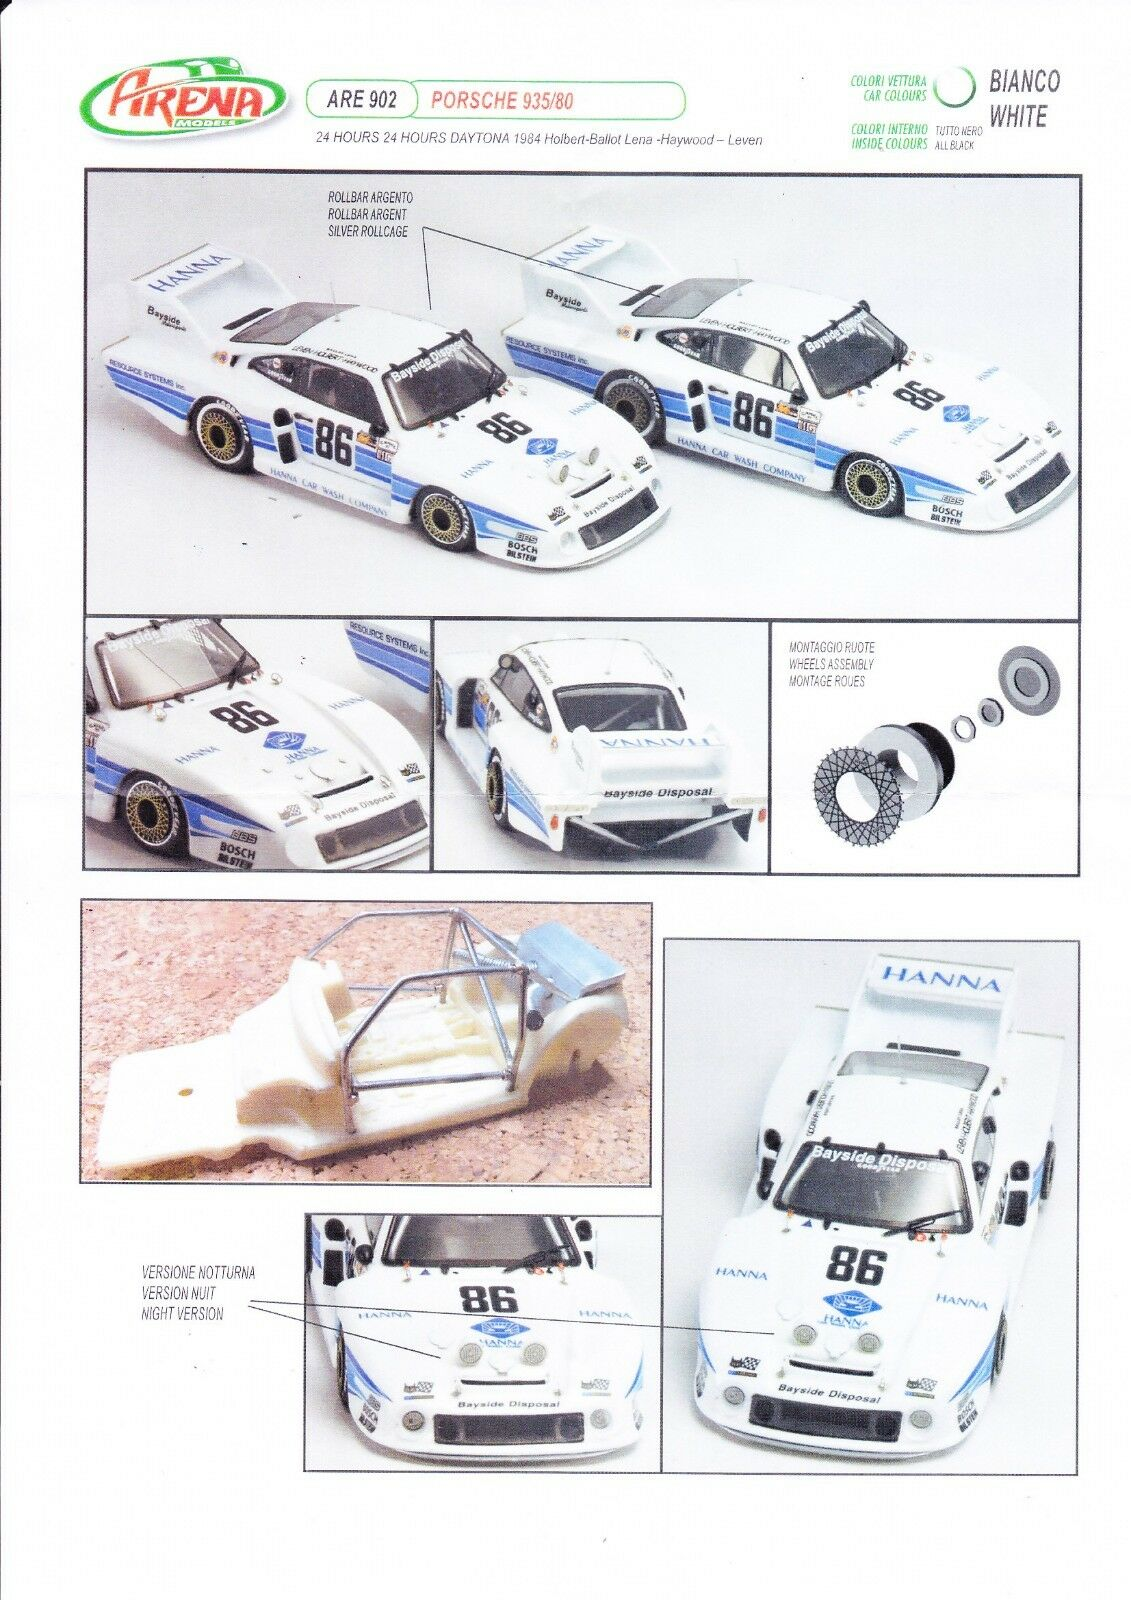 kit Porsche 935 80  86 Daytona 1984 - Arena Models kit 1 43